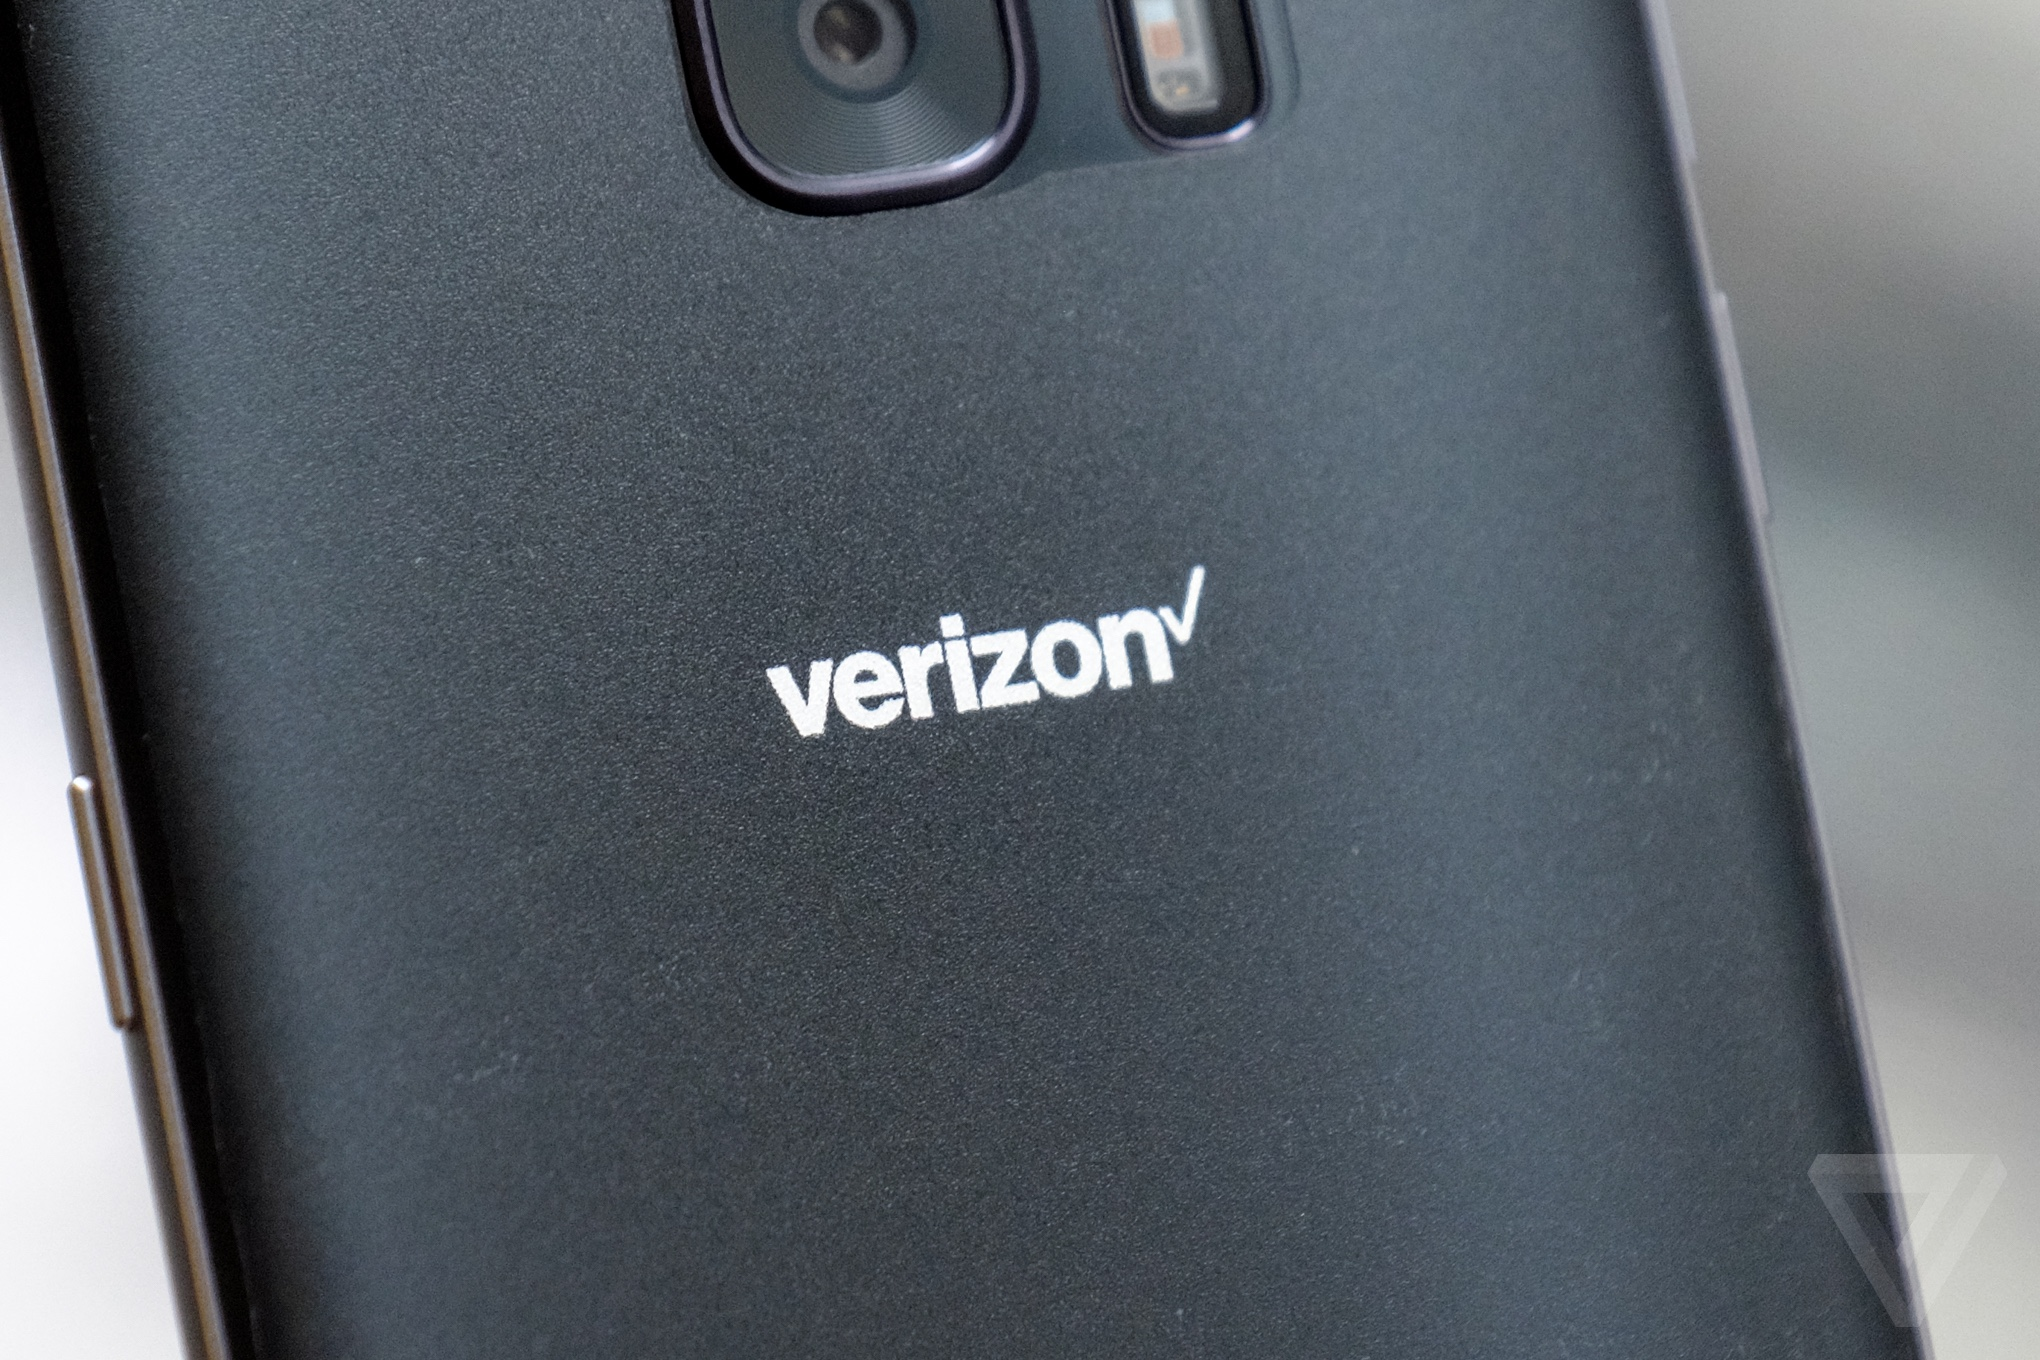 Verizon has stopped activating phones that don't support LTE